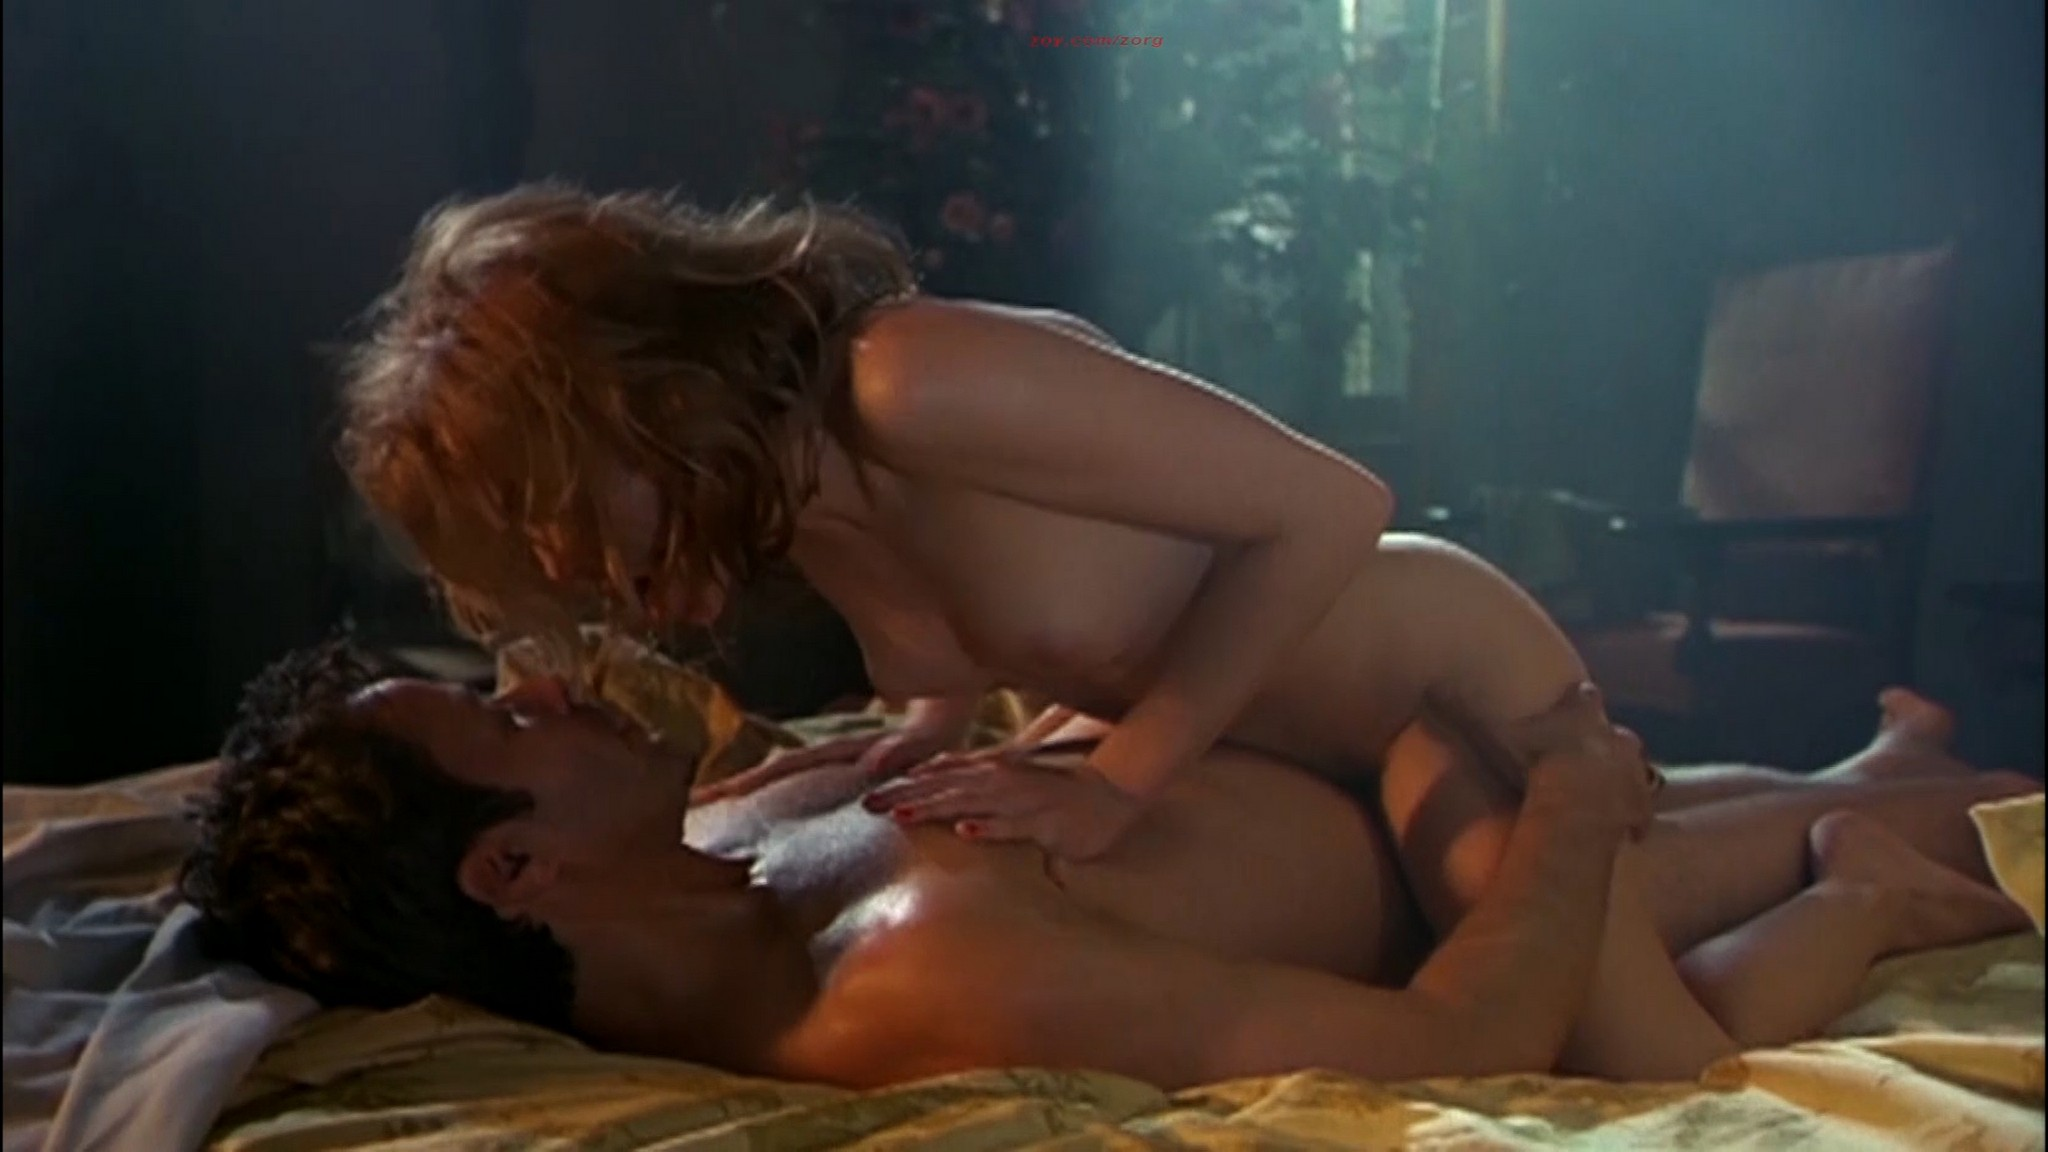 Céline Bonnier nude and hot sex - The Hunger (1998) HD 1080p (7)